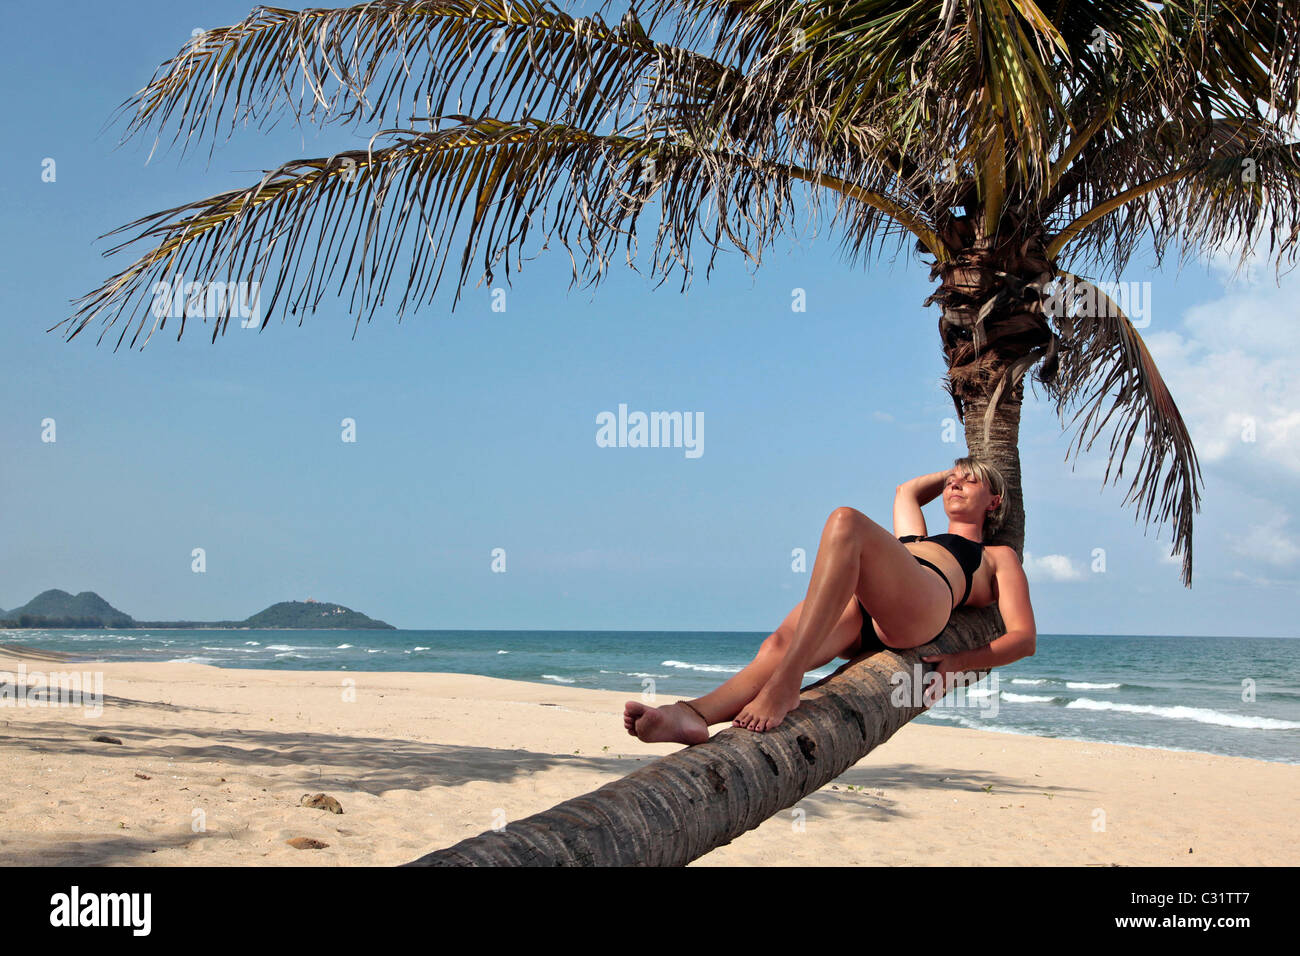 woman at the beach under a coconut tree stock photos woman at the